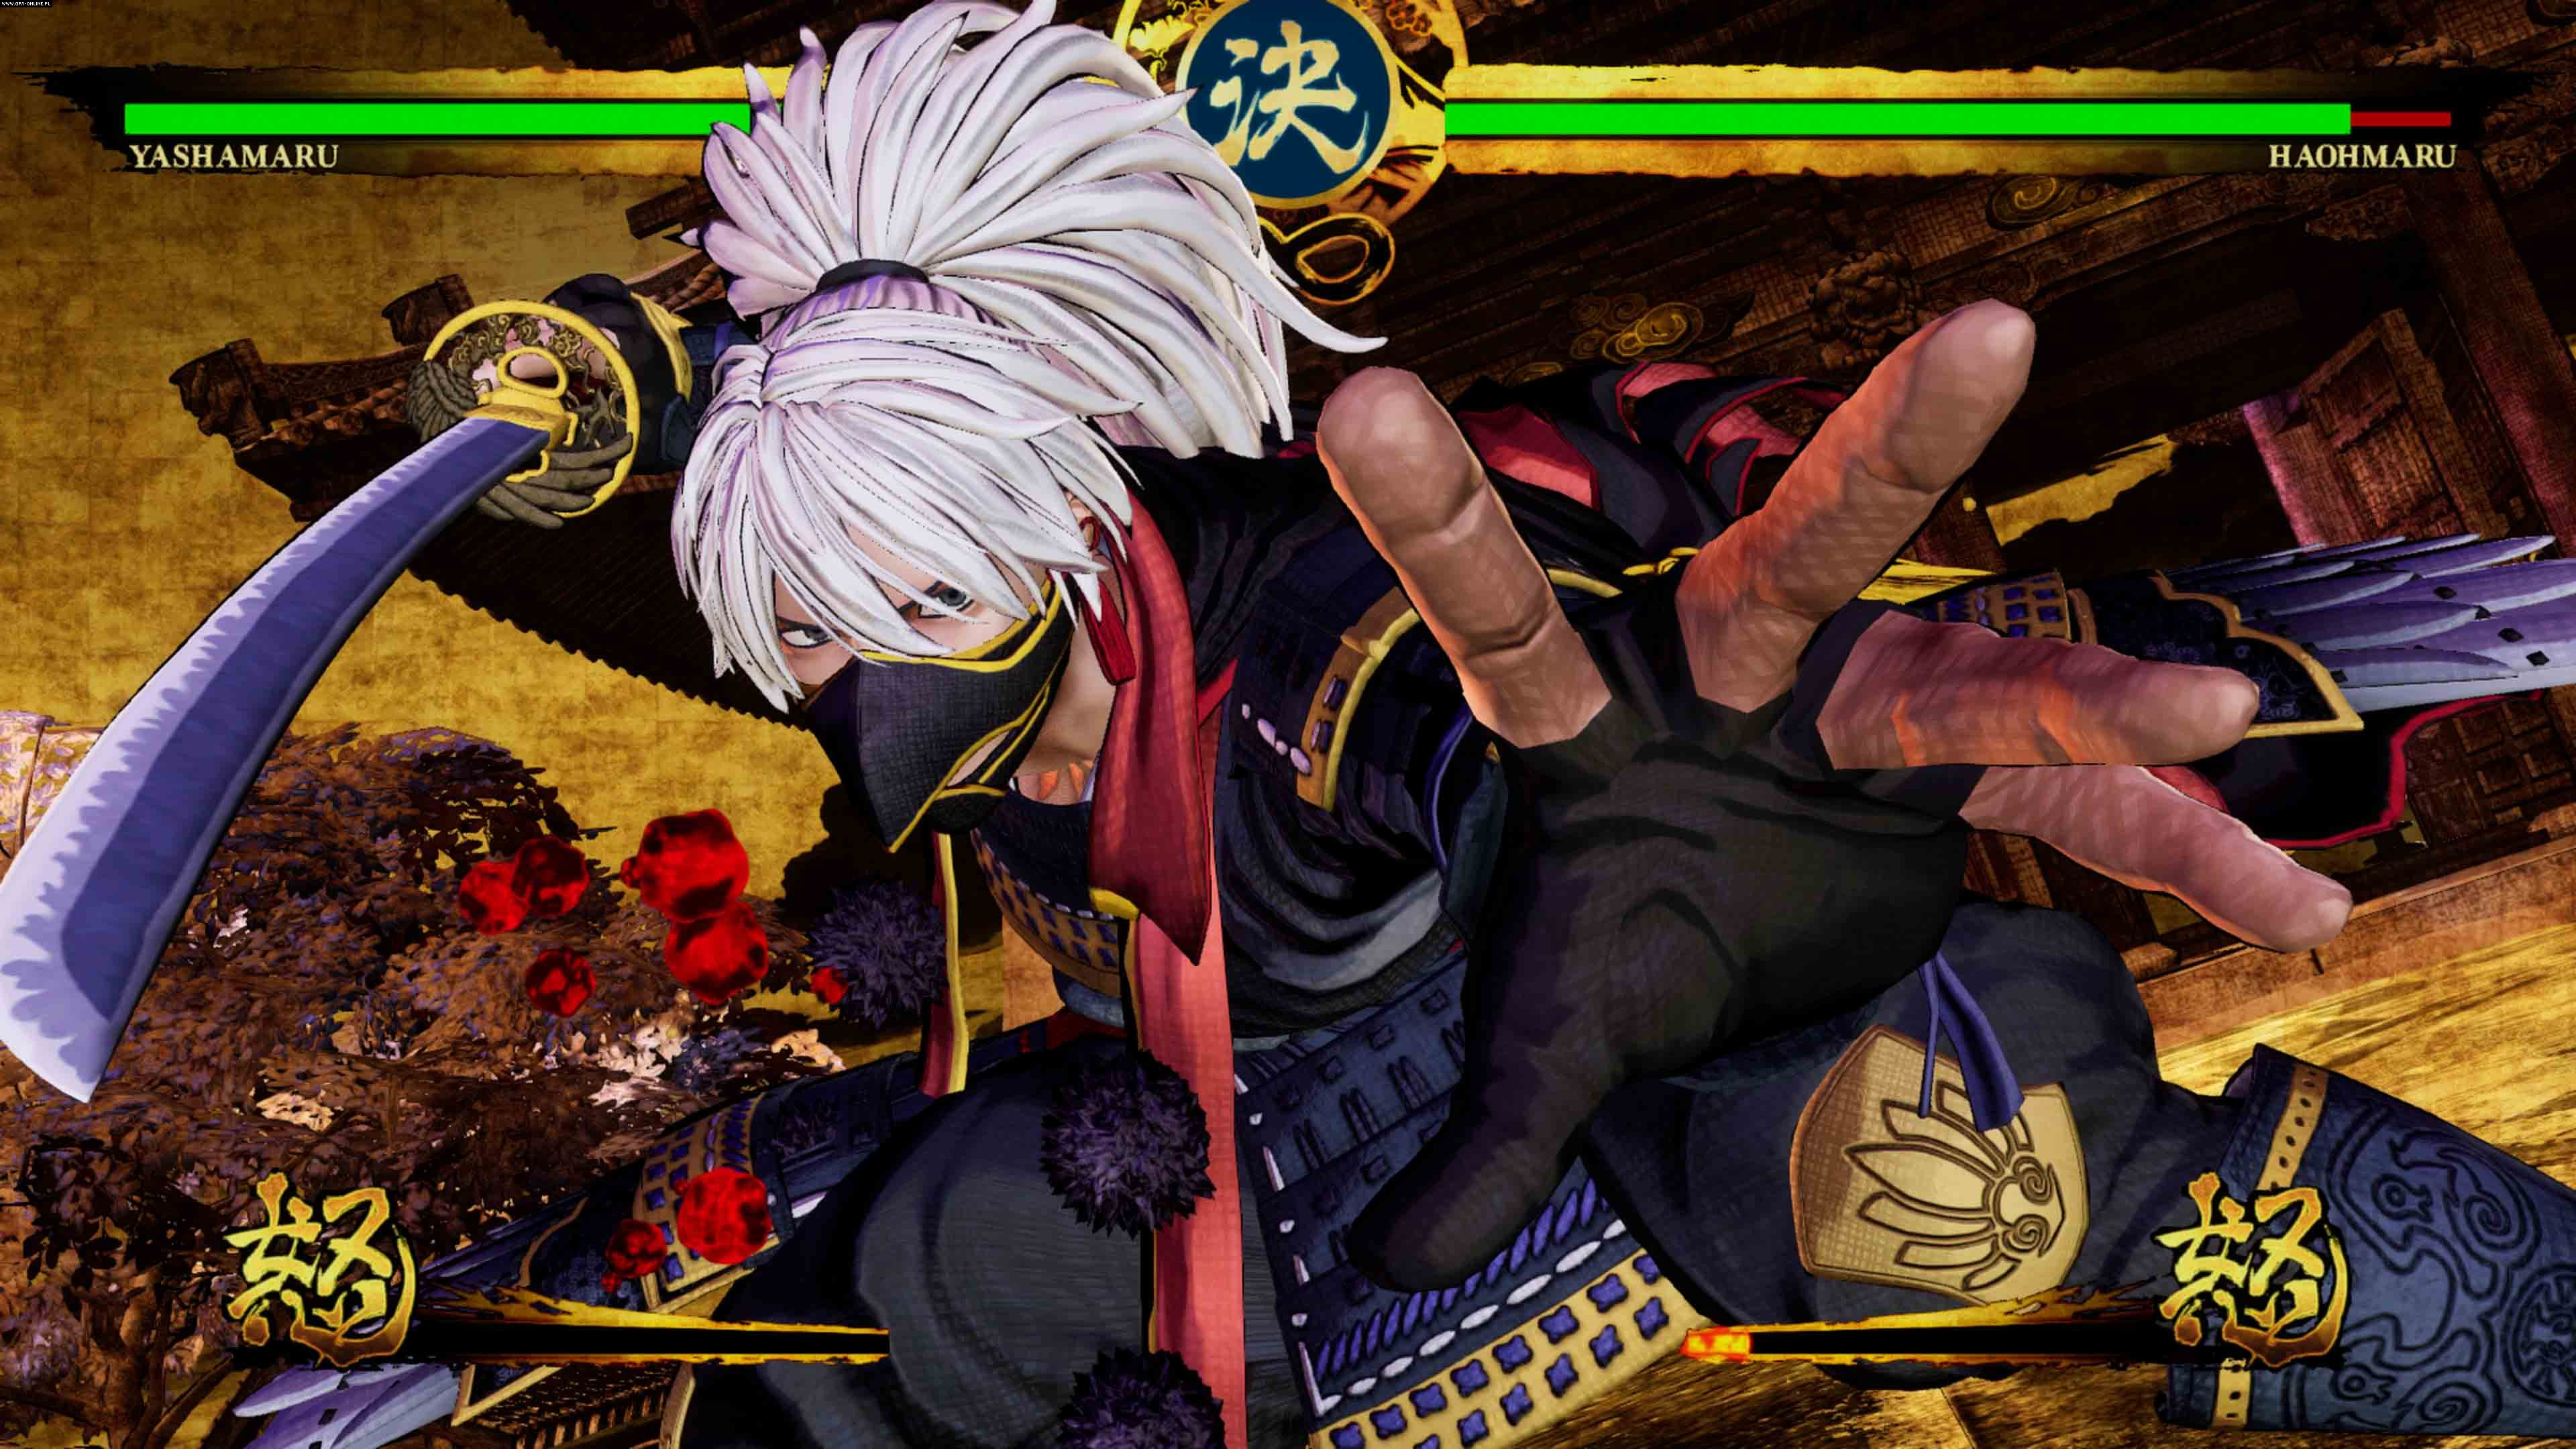 Samurai Shodown PC, PS4, XONE, Switch Games Image 4/30, SNK, Athlon Games